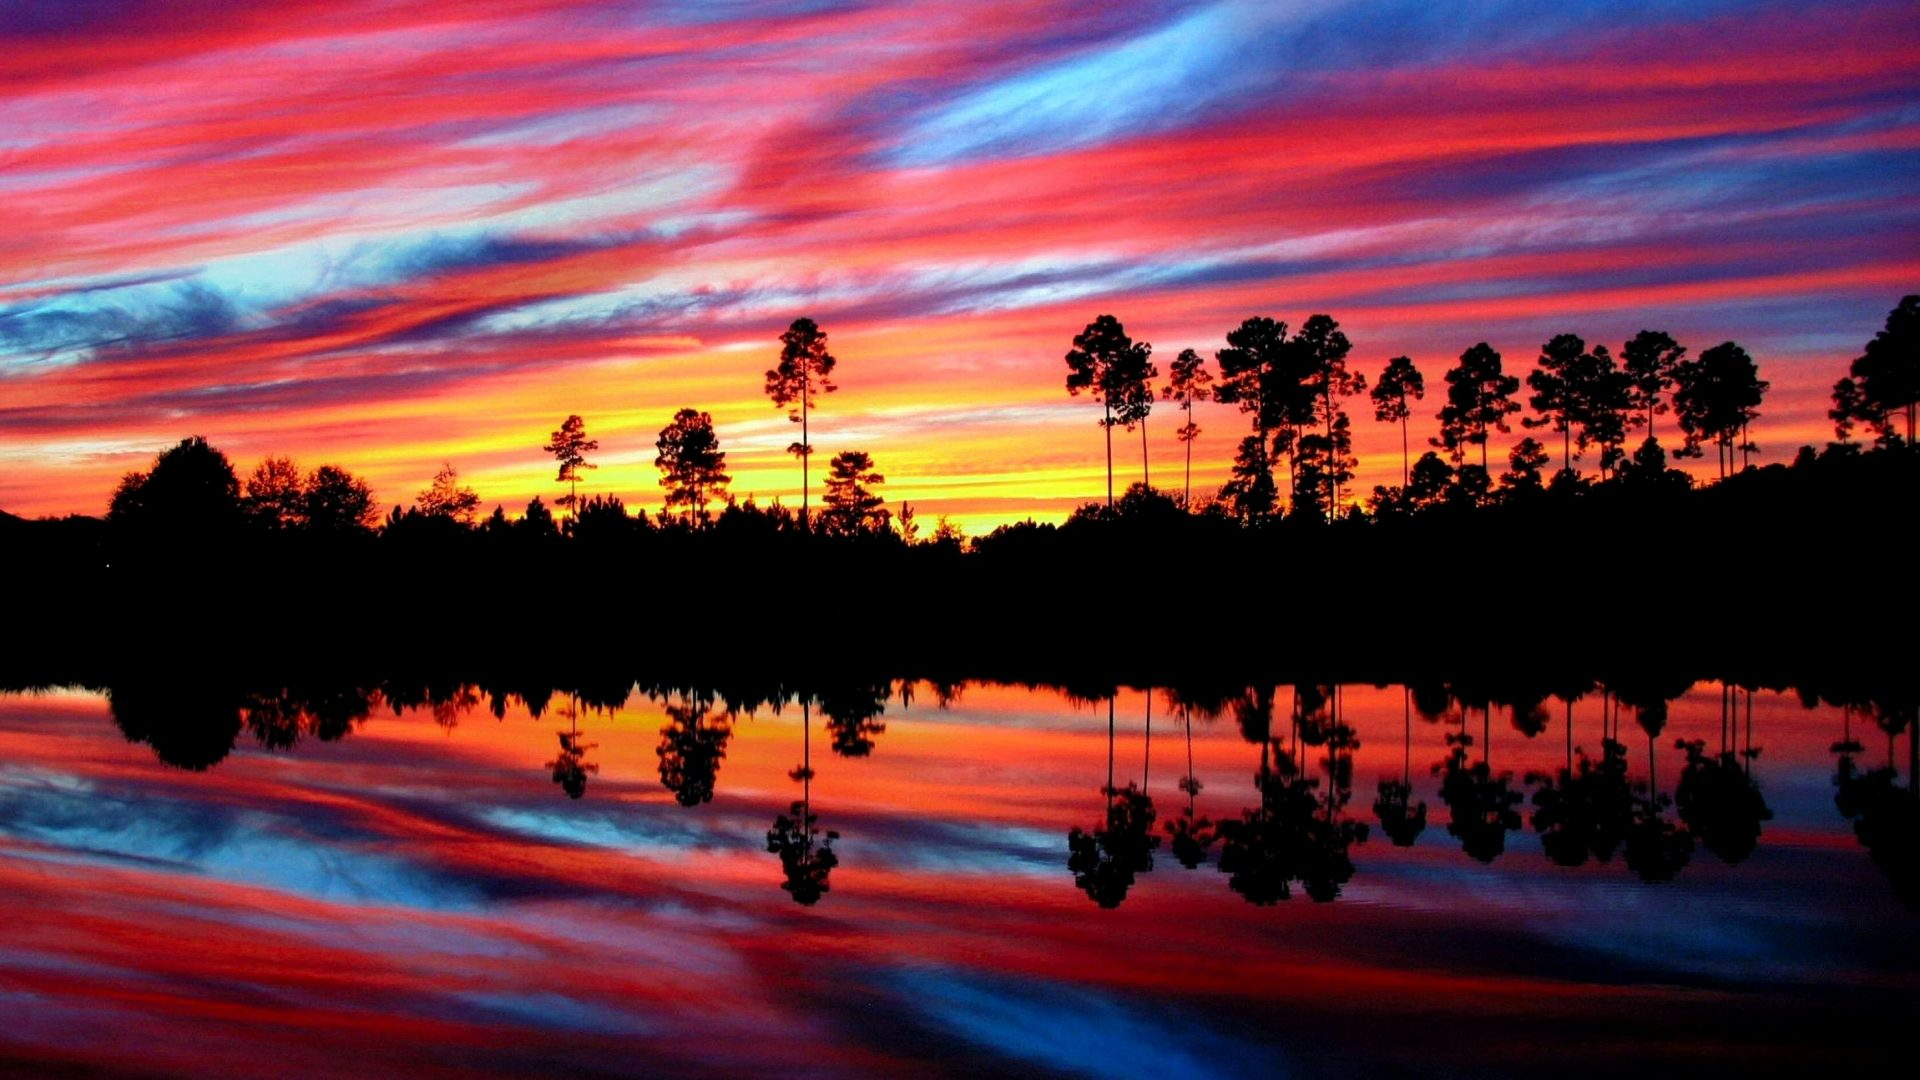 Colorful-Tag-Colors-Sunsets-Sunset-Amazing-Sky-Colorful-Nature-Iphone-for-HD-High-D-wallpaper-wp3604203